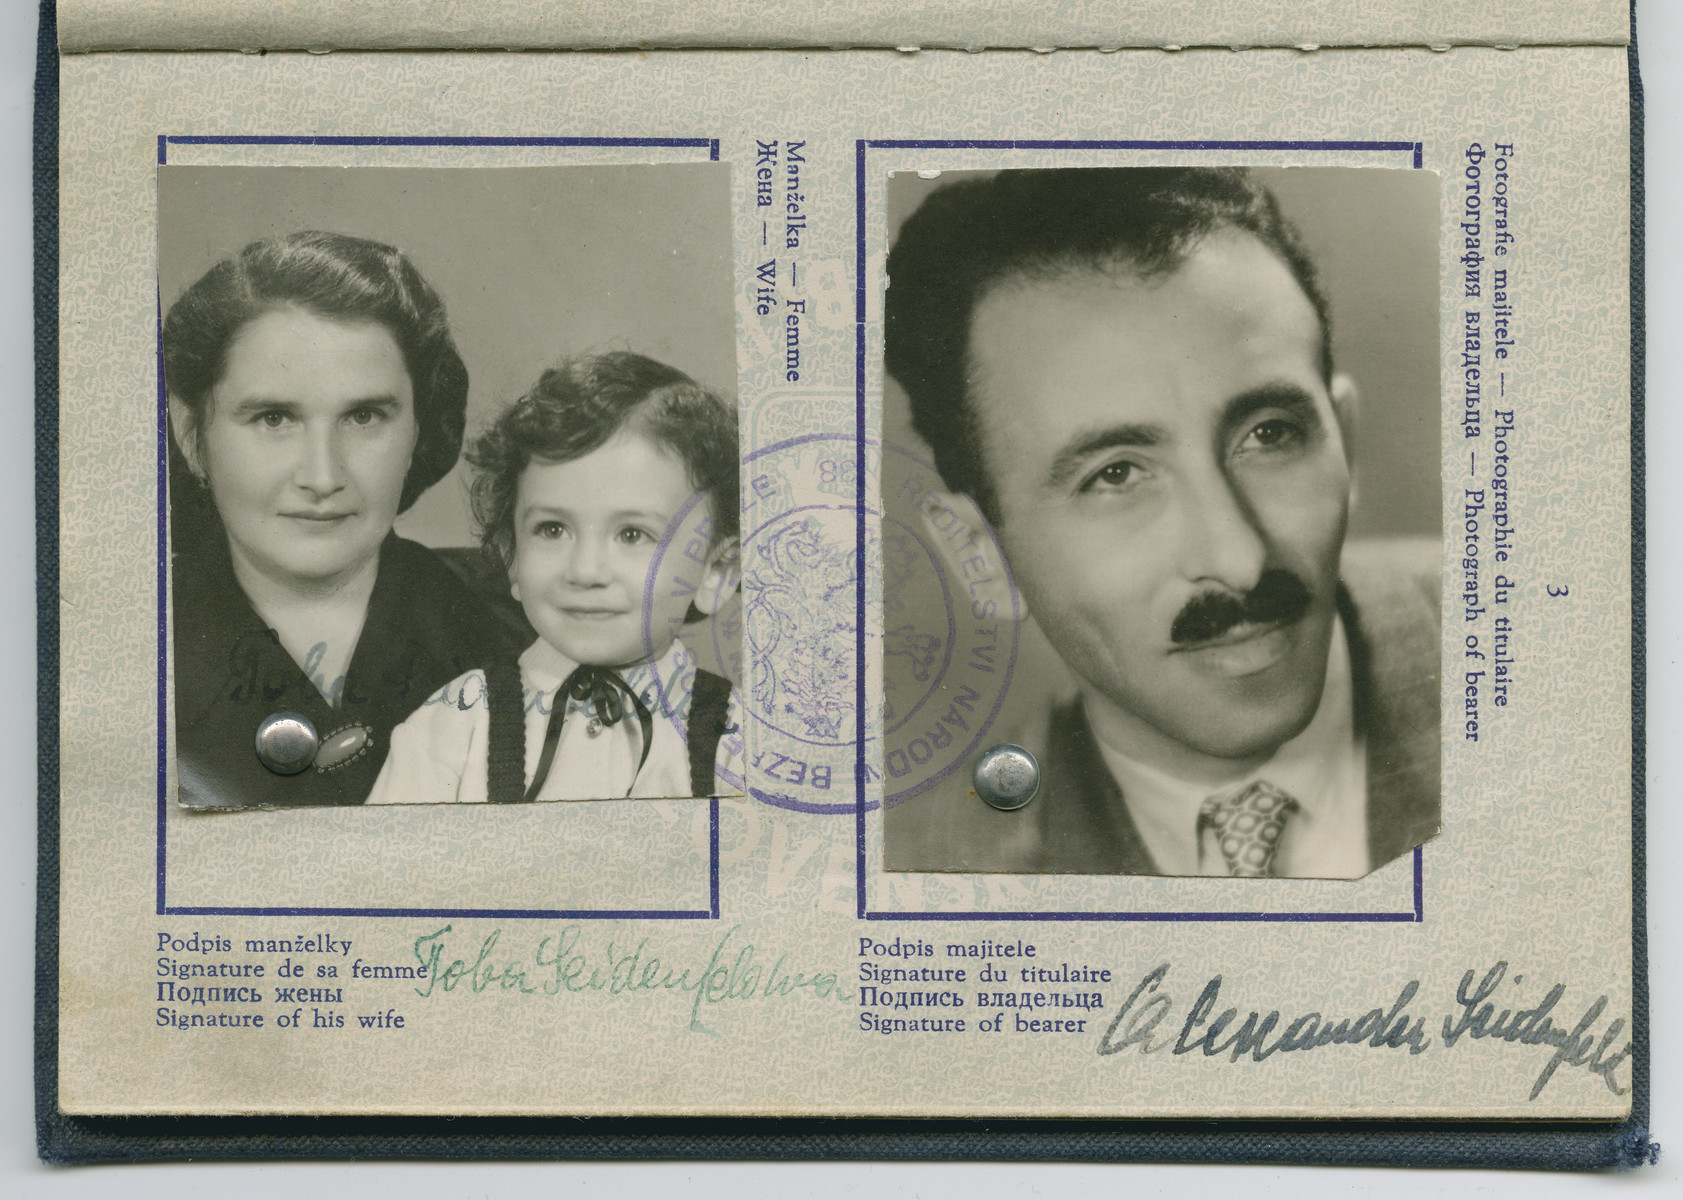 Photographs from the Czech family passport of Alexander (Sandor), Toba (Ilona), and Jiri Seidenfeld.